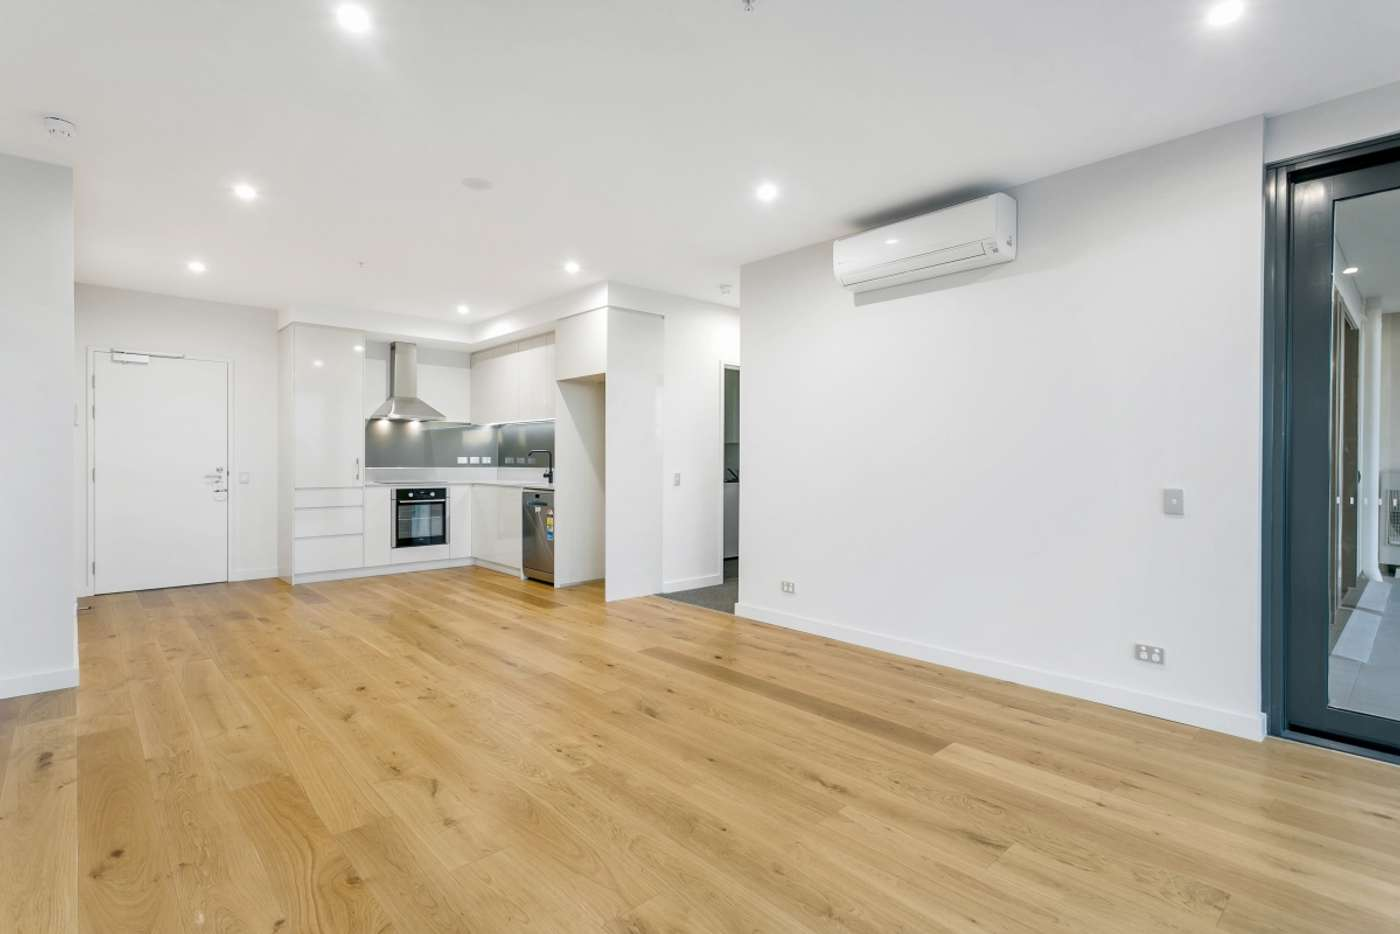 Sixth view of Homely apartment listing, 1205/297 Pirie Street, Adelaide SA 5000